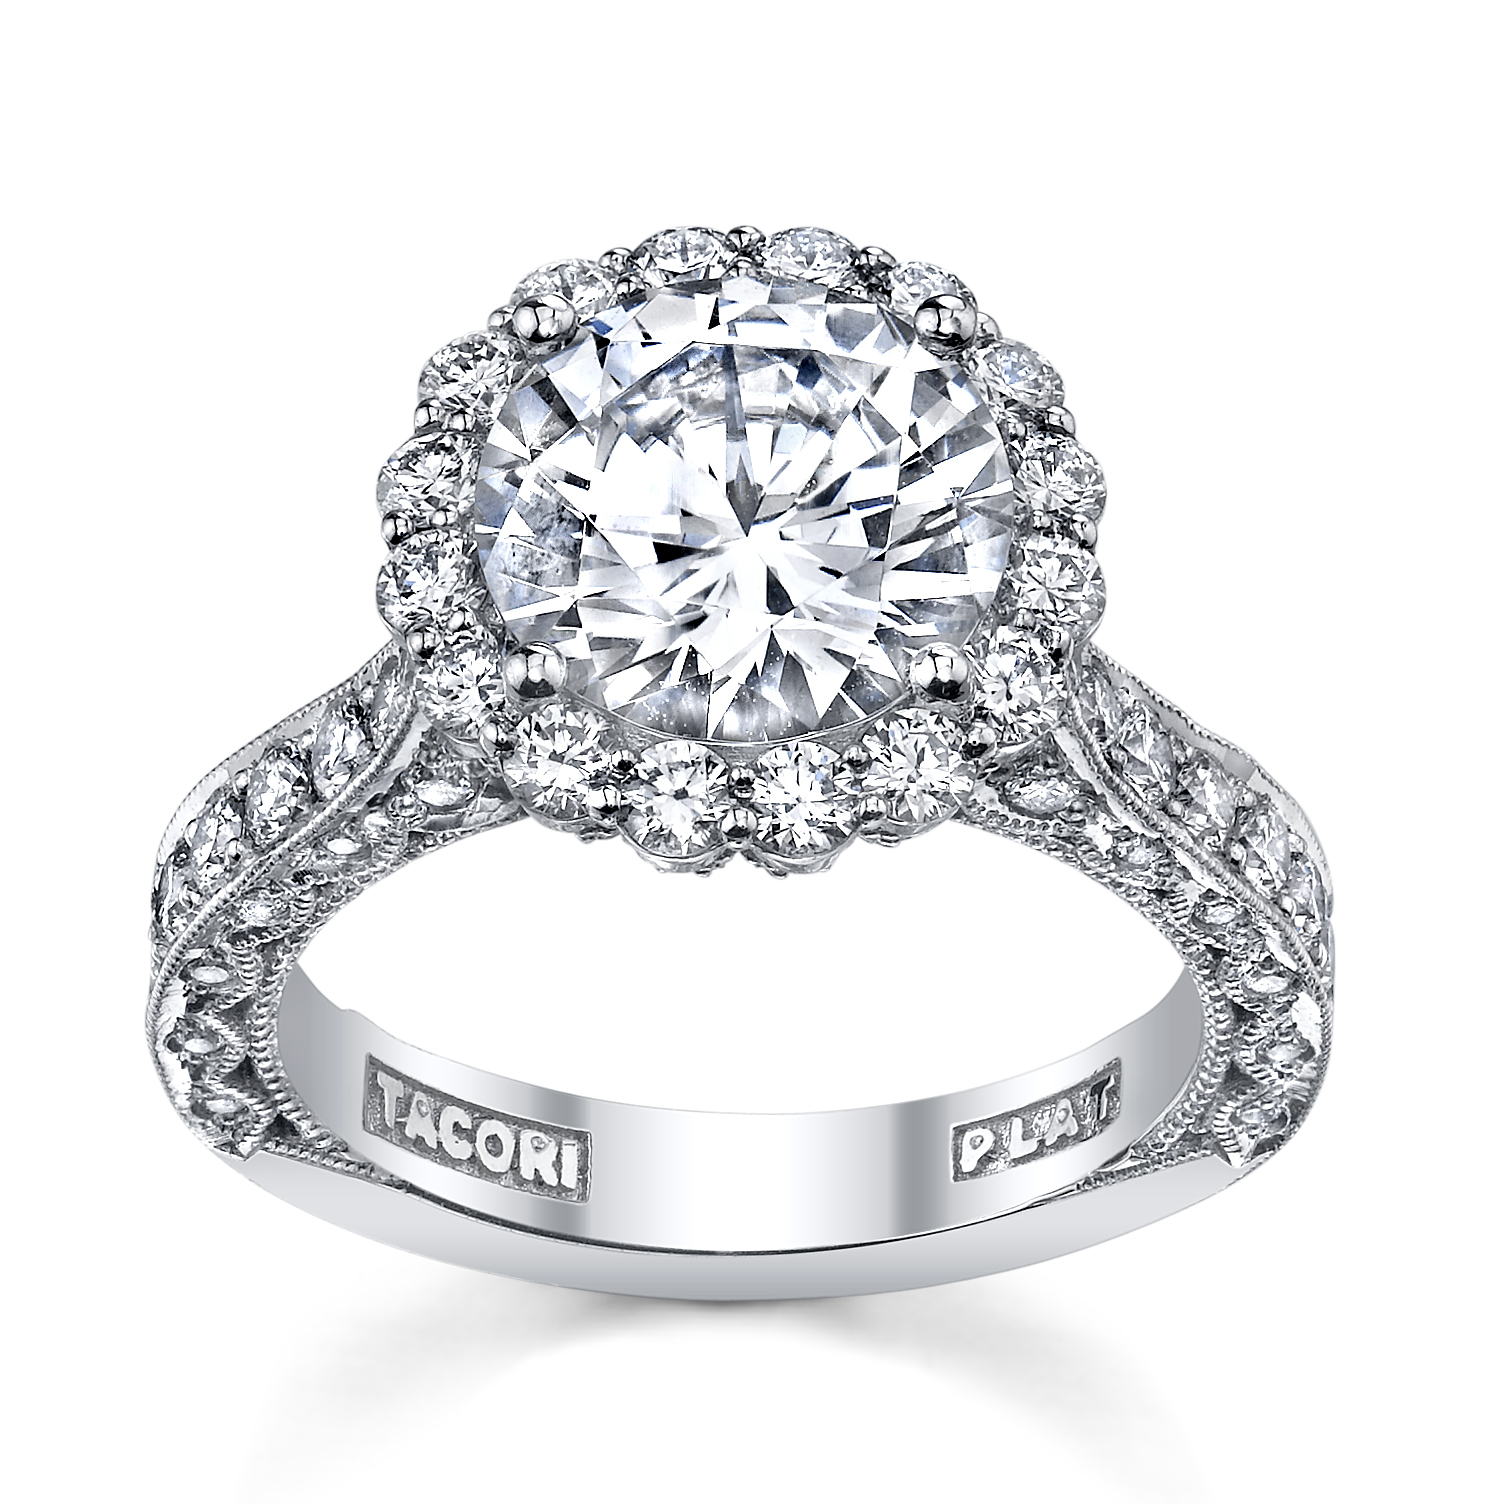 tacori wedding rings settings tacori wedding band Tacori wedding rings settings